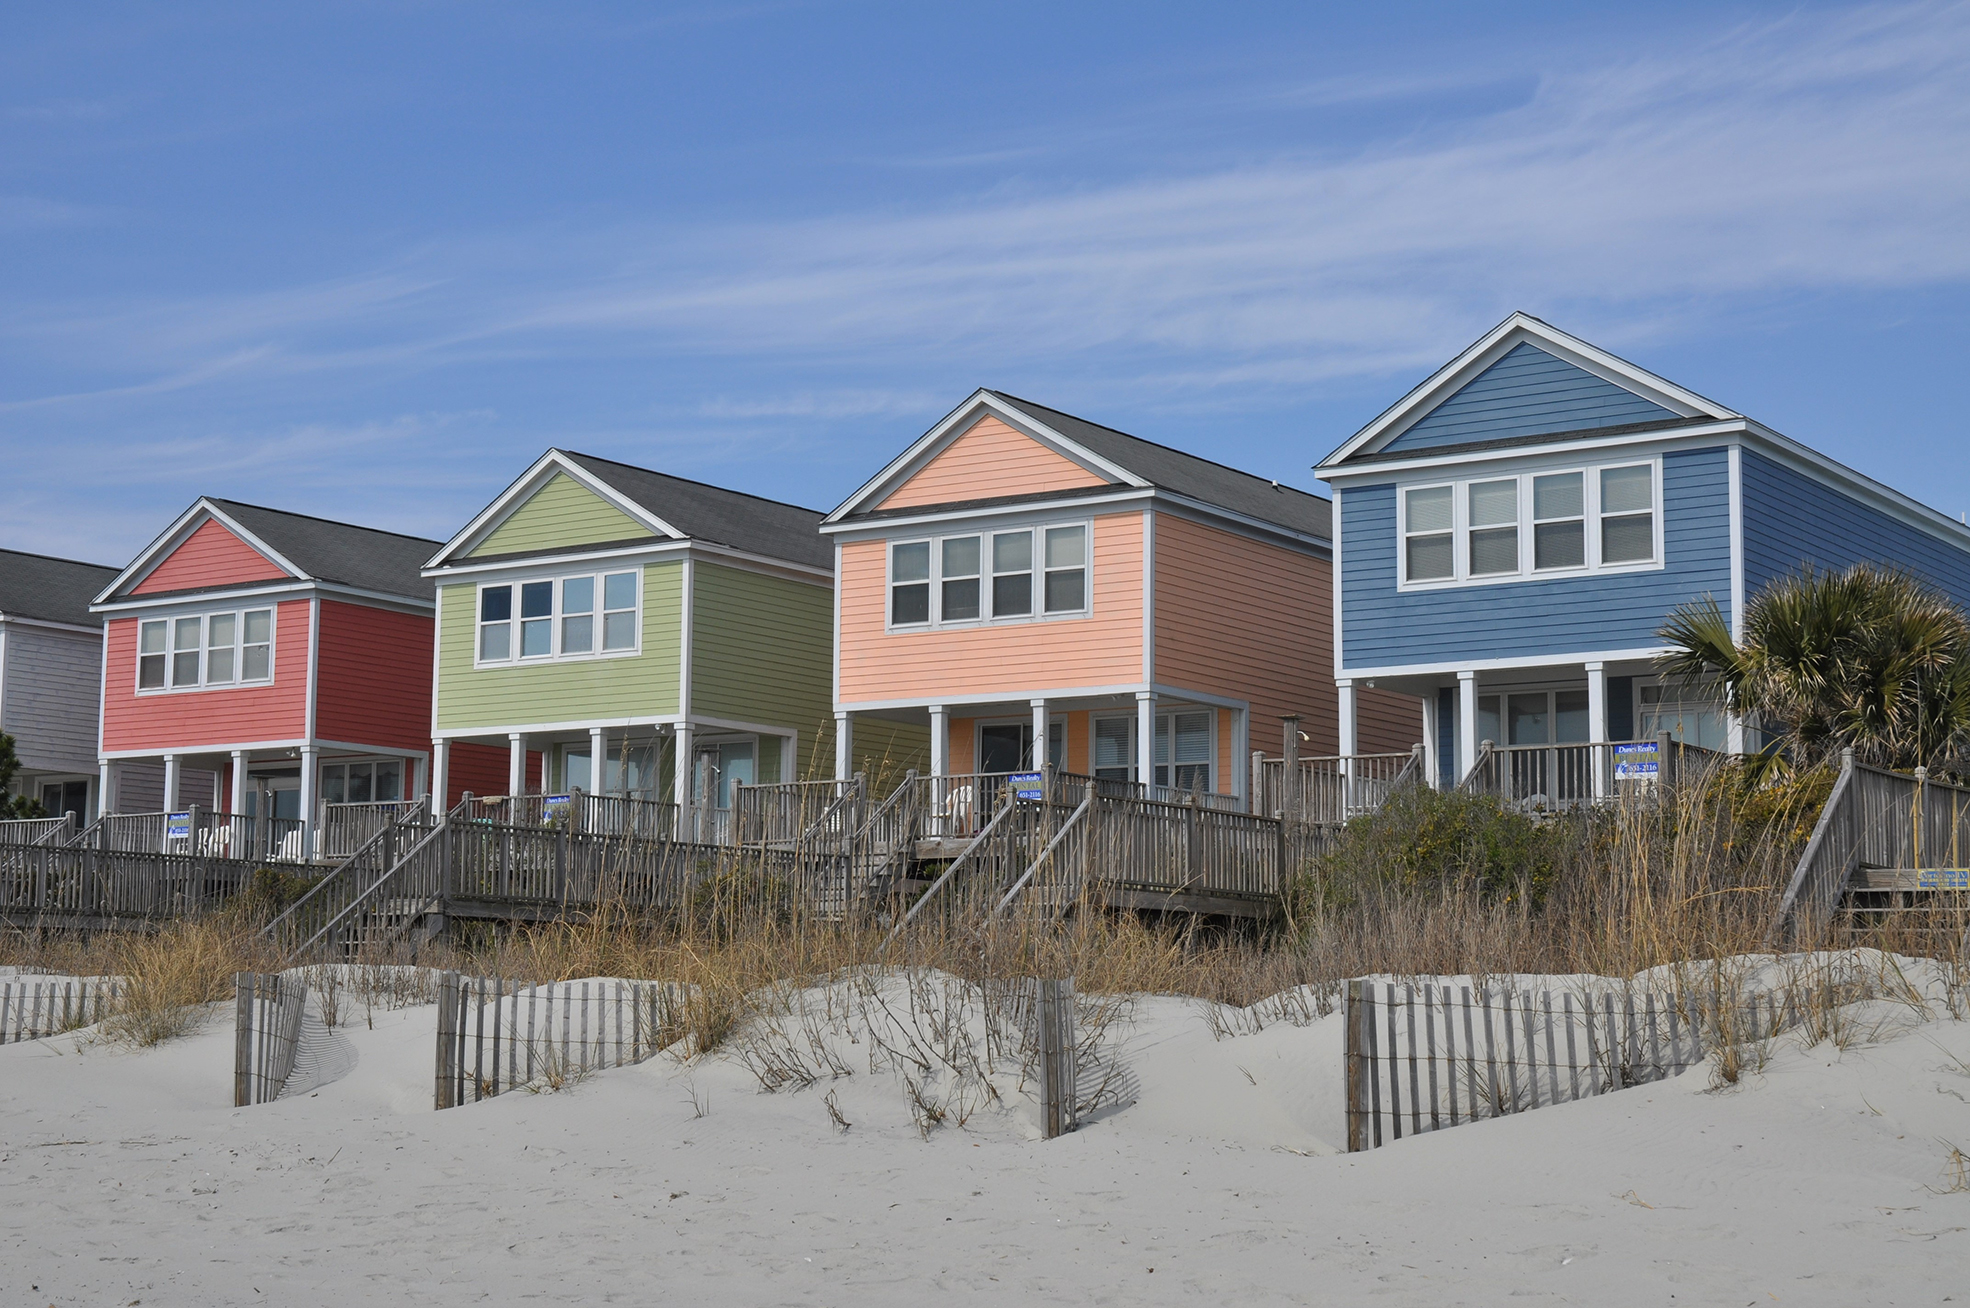 How to Level-Up Your Vacation Rental Business This Year